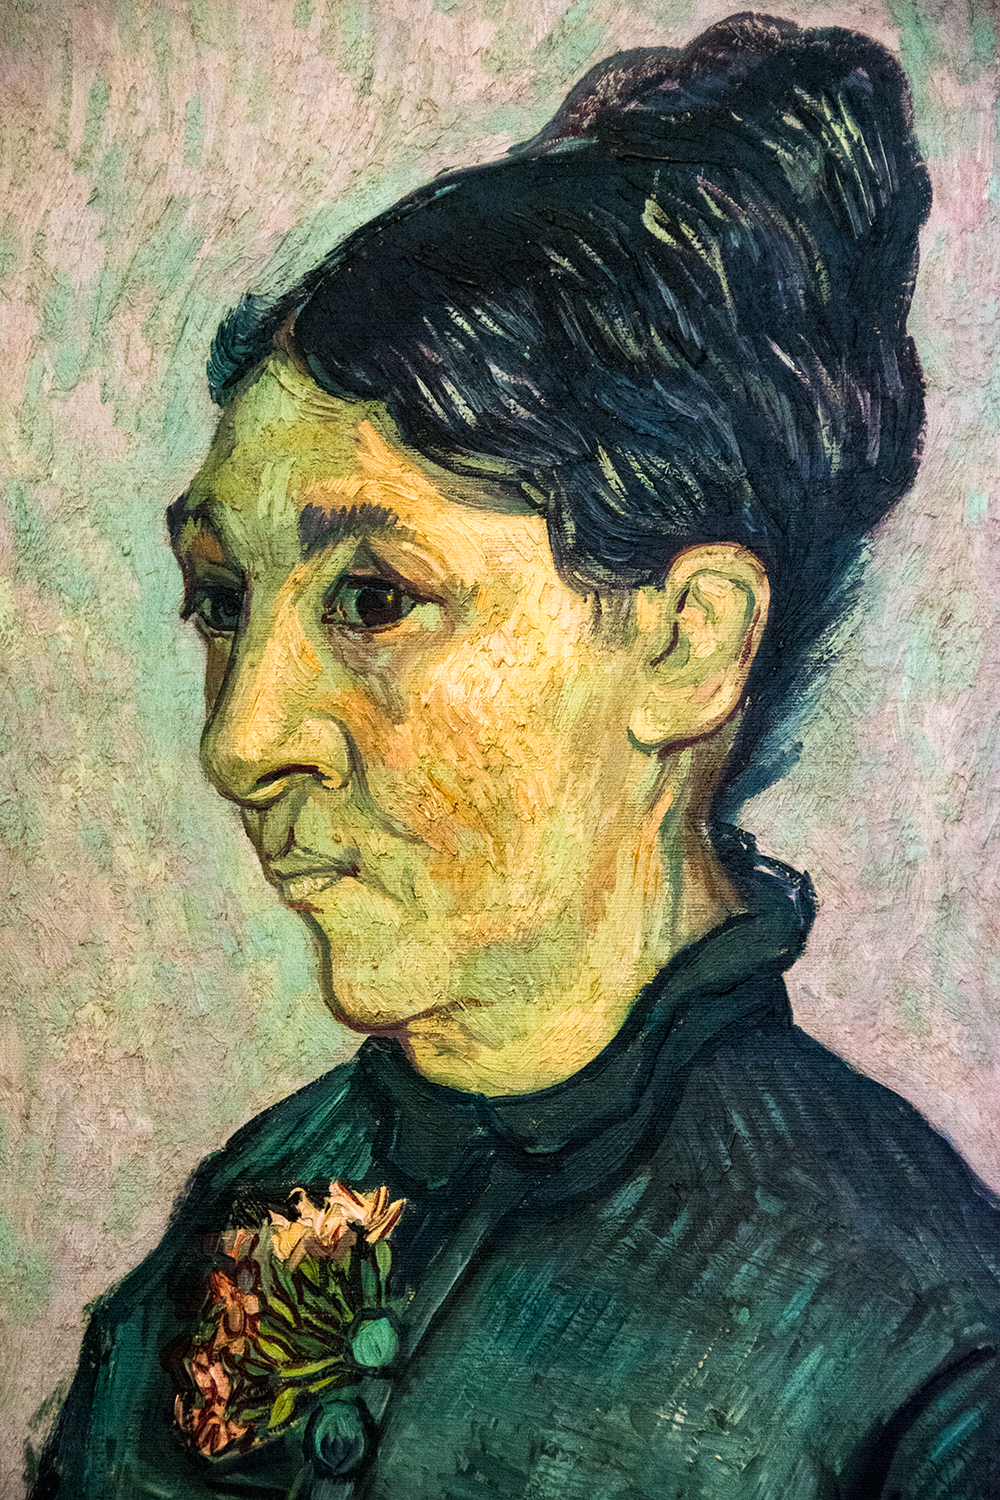 Vincent Van Gogh, Portrait of Mme Trabuc (1889) (detail)